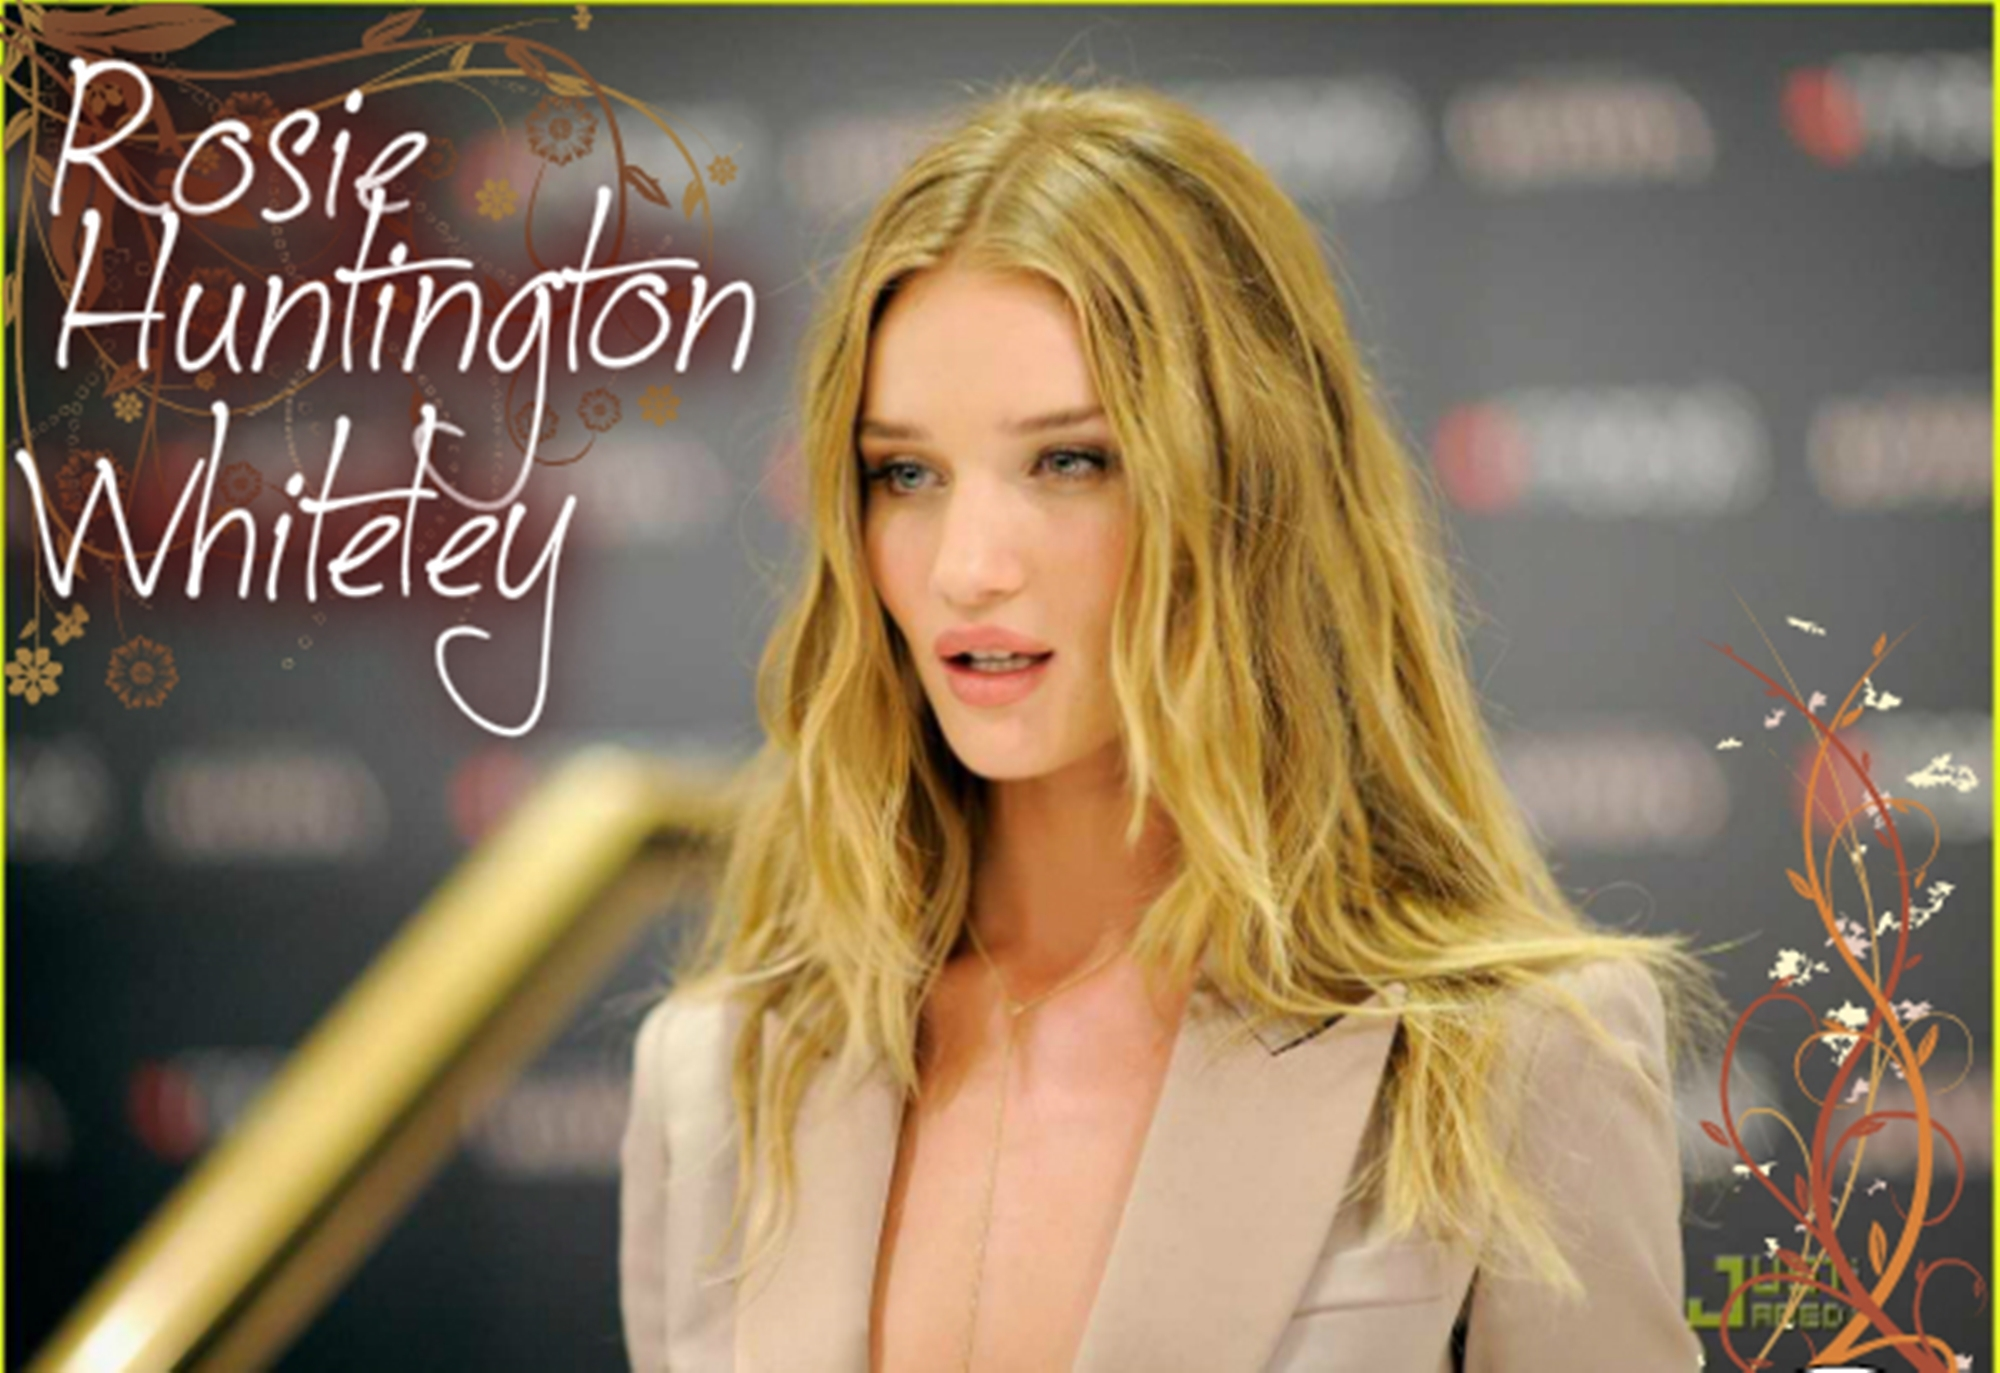 rosie huntington-whiteley images rosie wallpapers hd wallpaper and